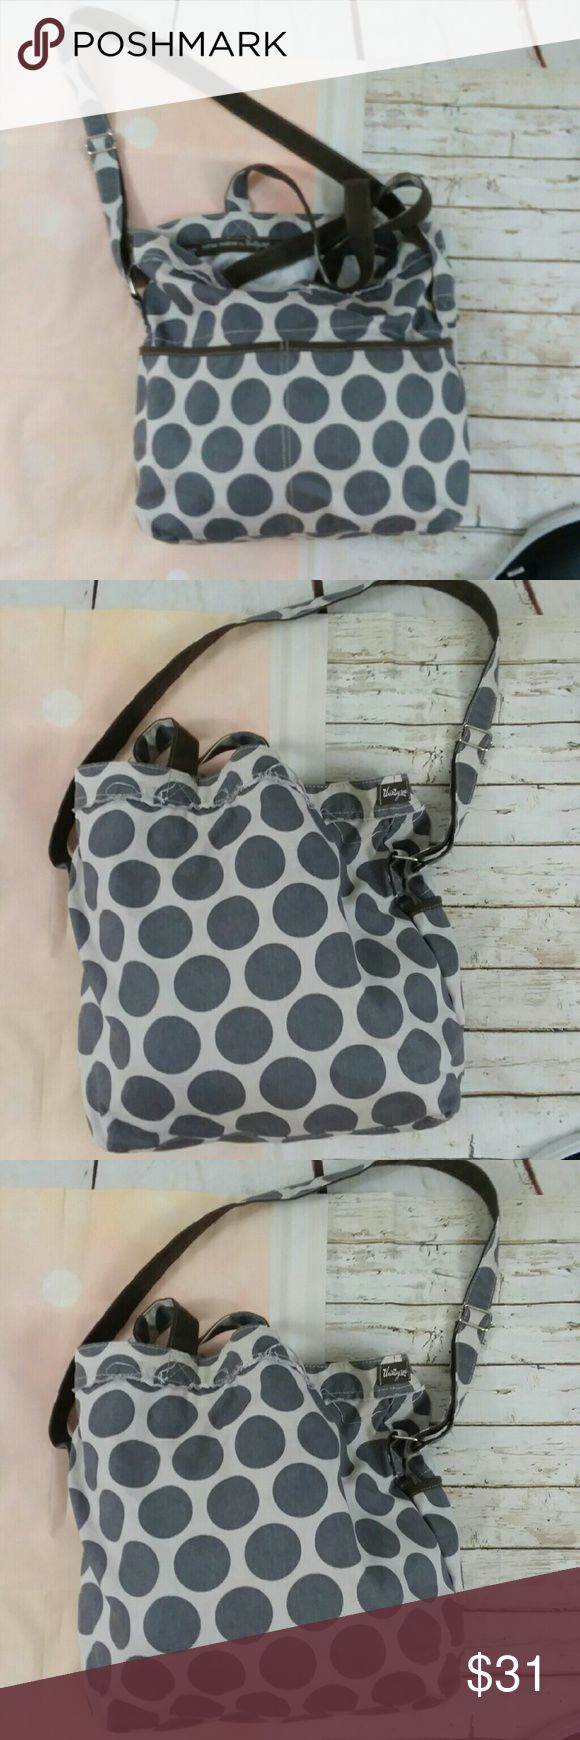 Thirty One Retro Metro Gray Mos Polka Dot Tote Bag This is the 31 brand retro Metro gray mod polka dot embroidered K bag. It is in great preowned condition and sold without stains or flaws. Measure measures 17.5 inches in length 13 in in height 7 inch bag width  and 10 inch strap drop. Thirty One Bags Hobos